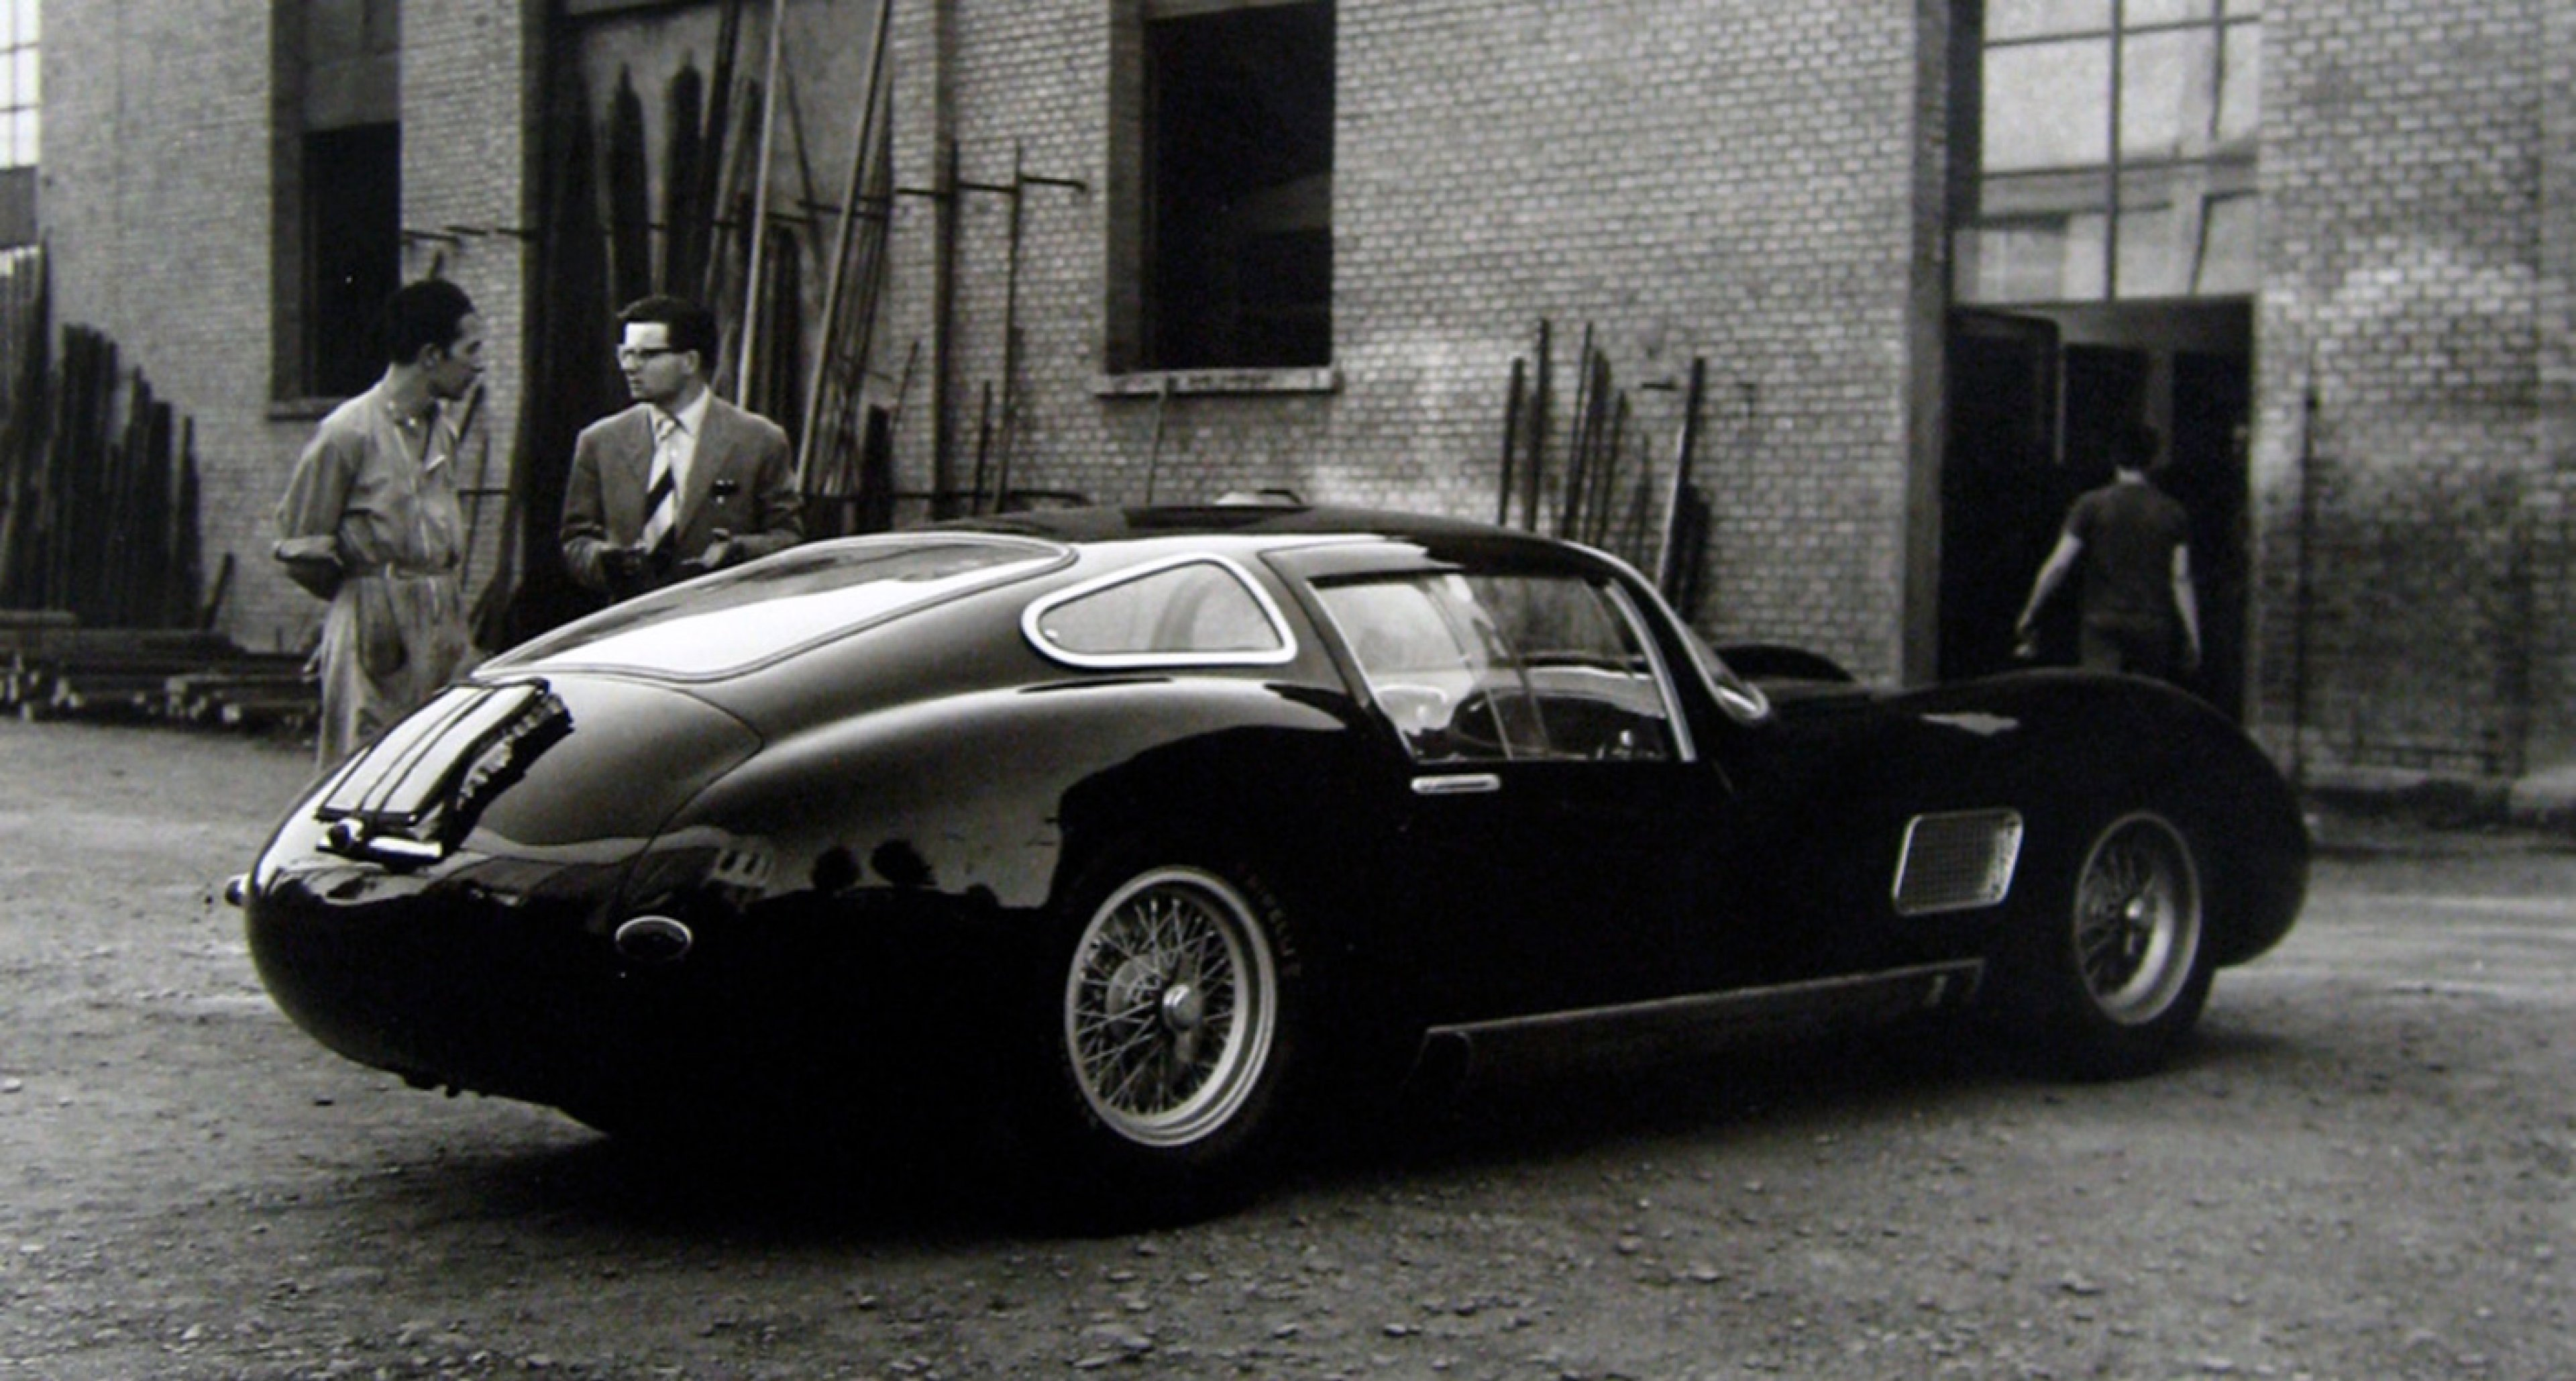 A beautiful Maserati outside the factory long before the Citroën takeover